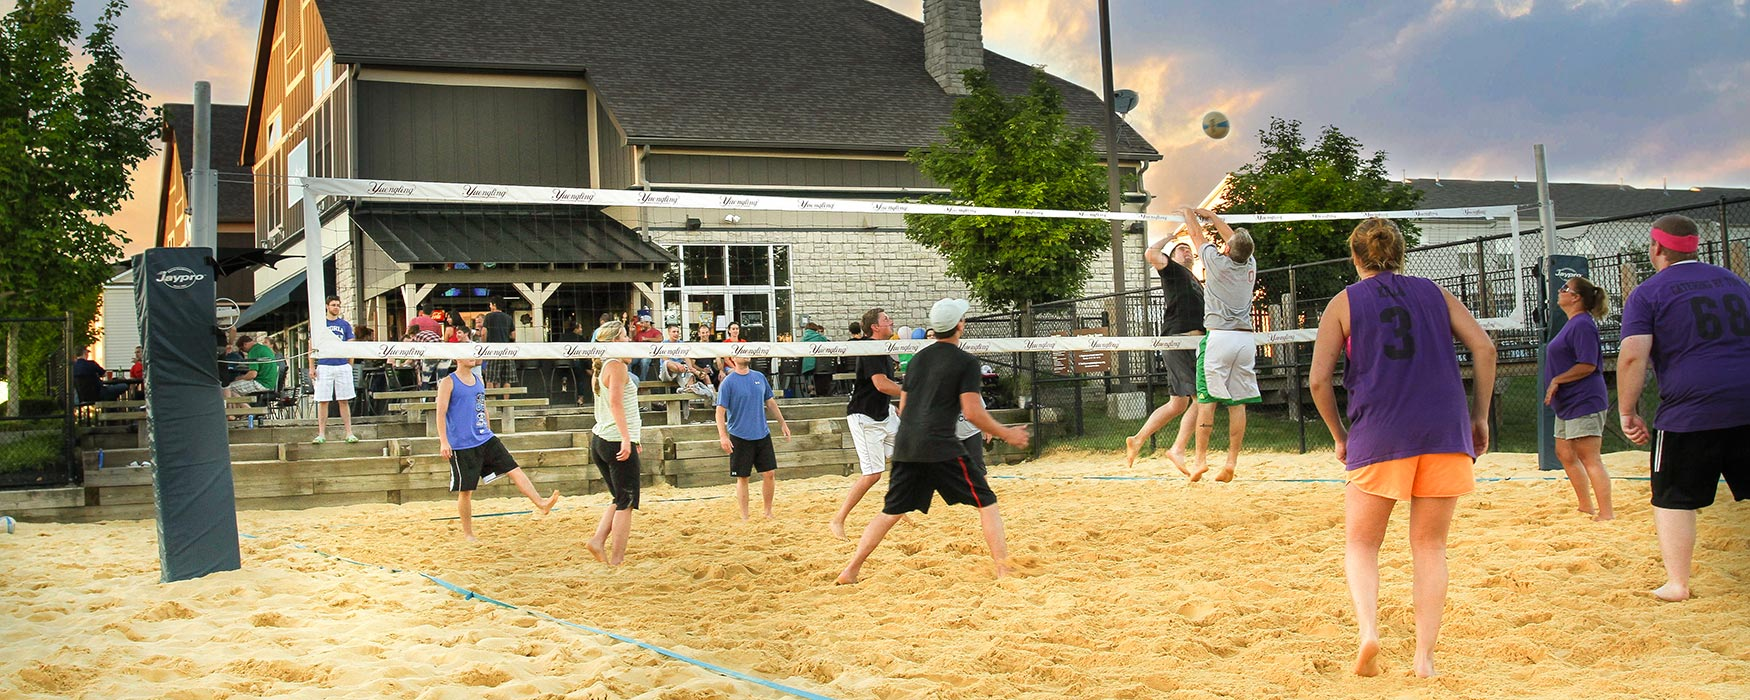 LC New Albany Park | New Albany Apartments | Volleyball Courts